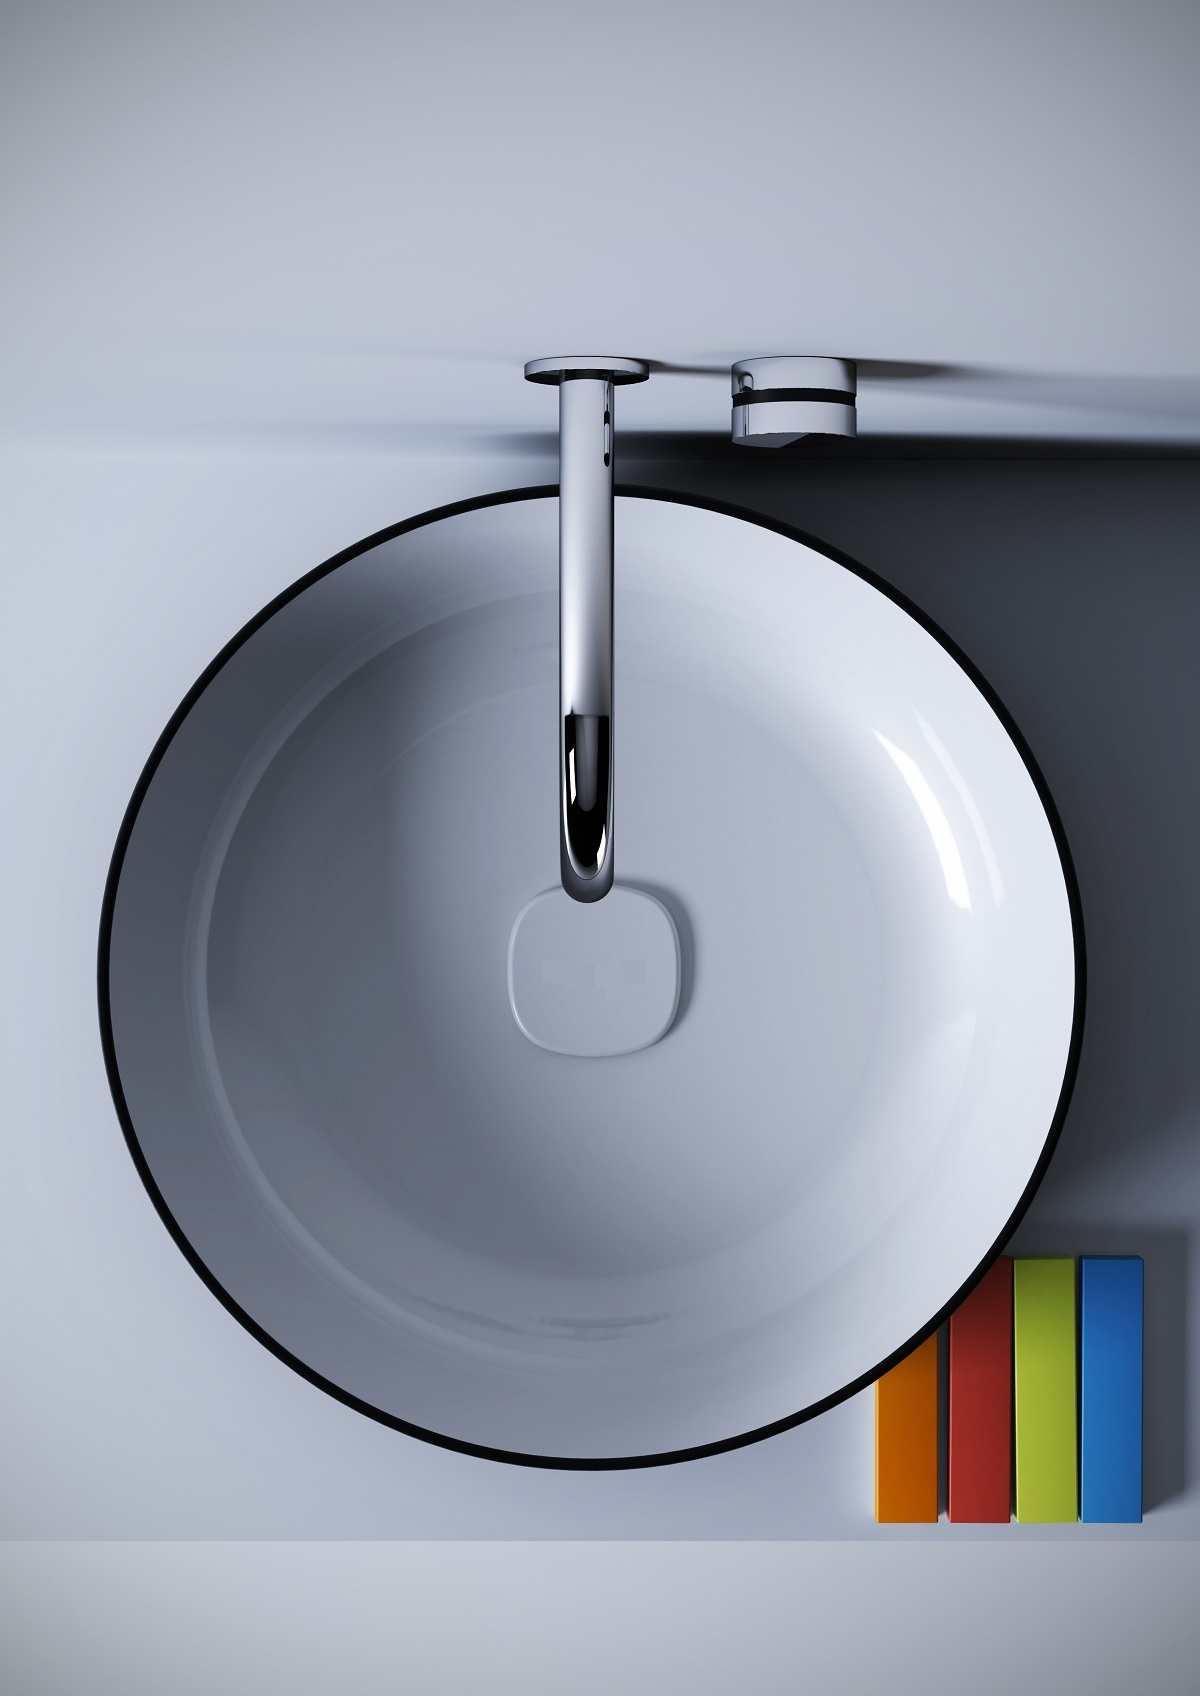 Metamorfosi-black-wht Round Ceramic Bathroom Vessel Sink